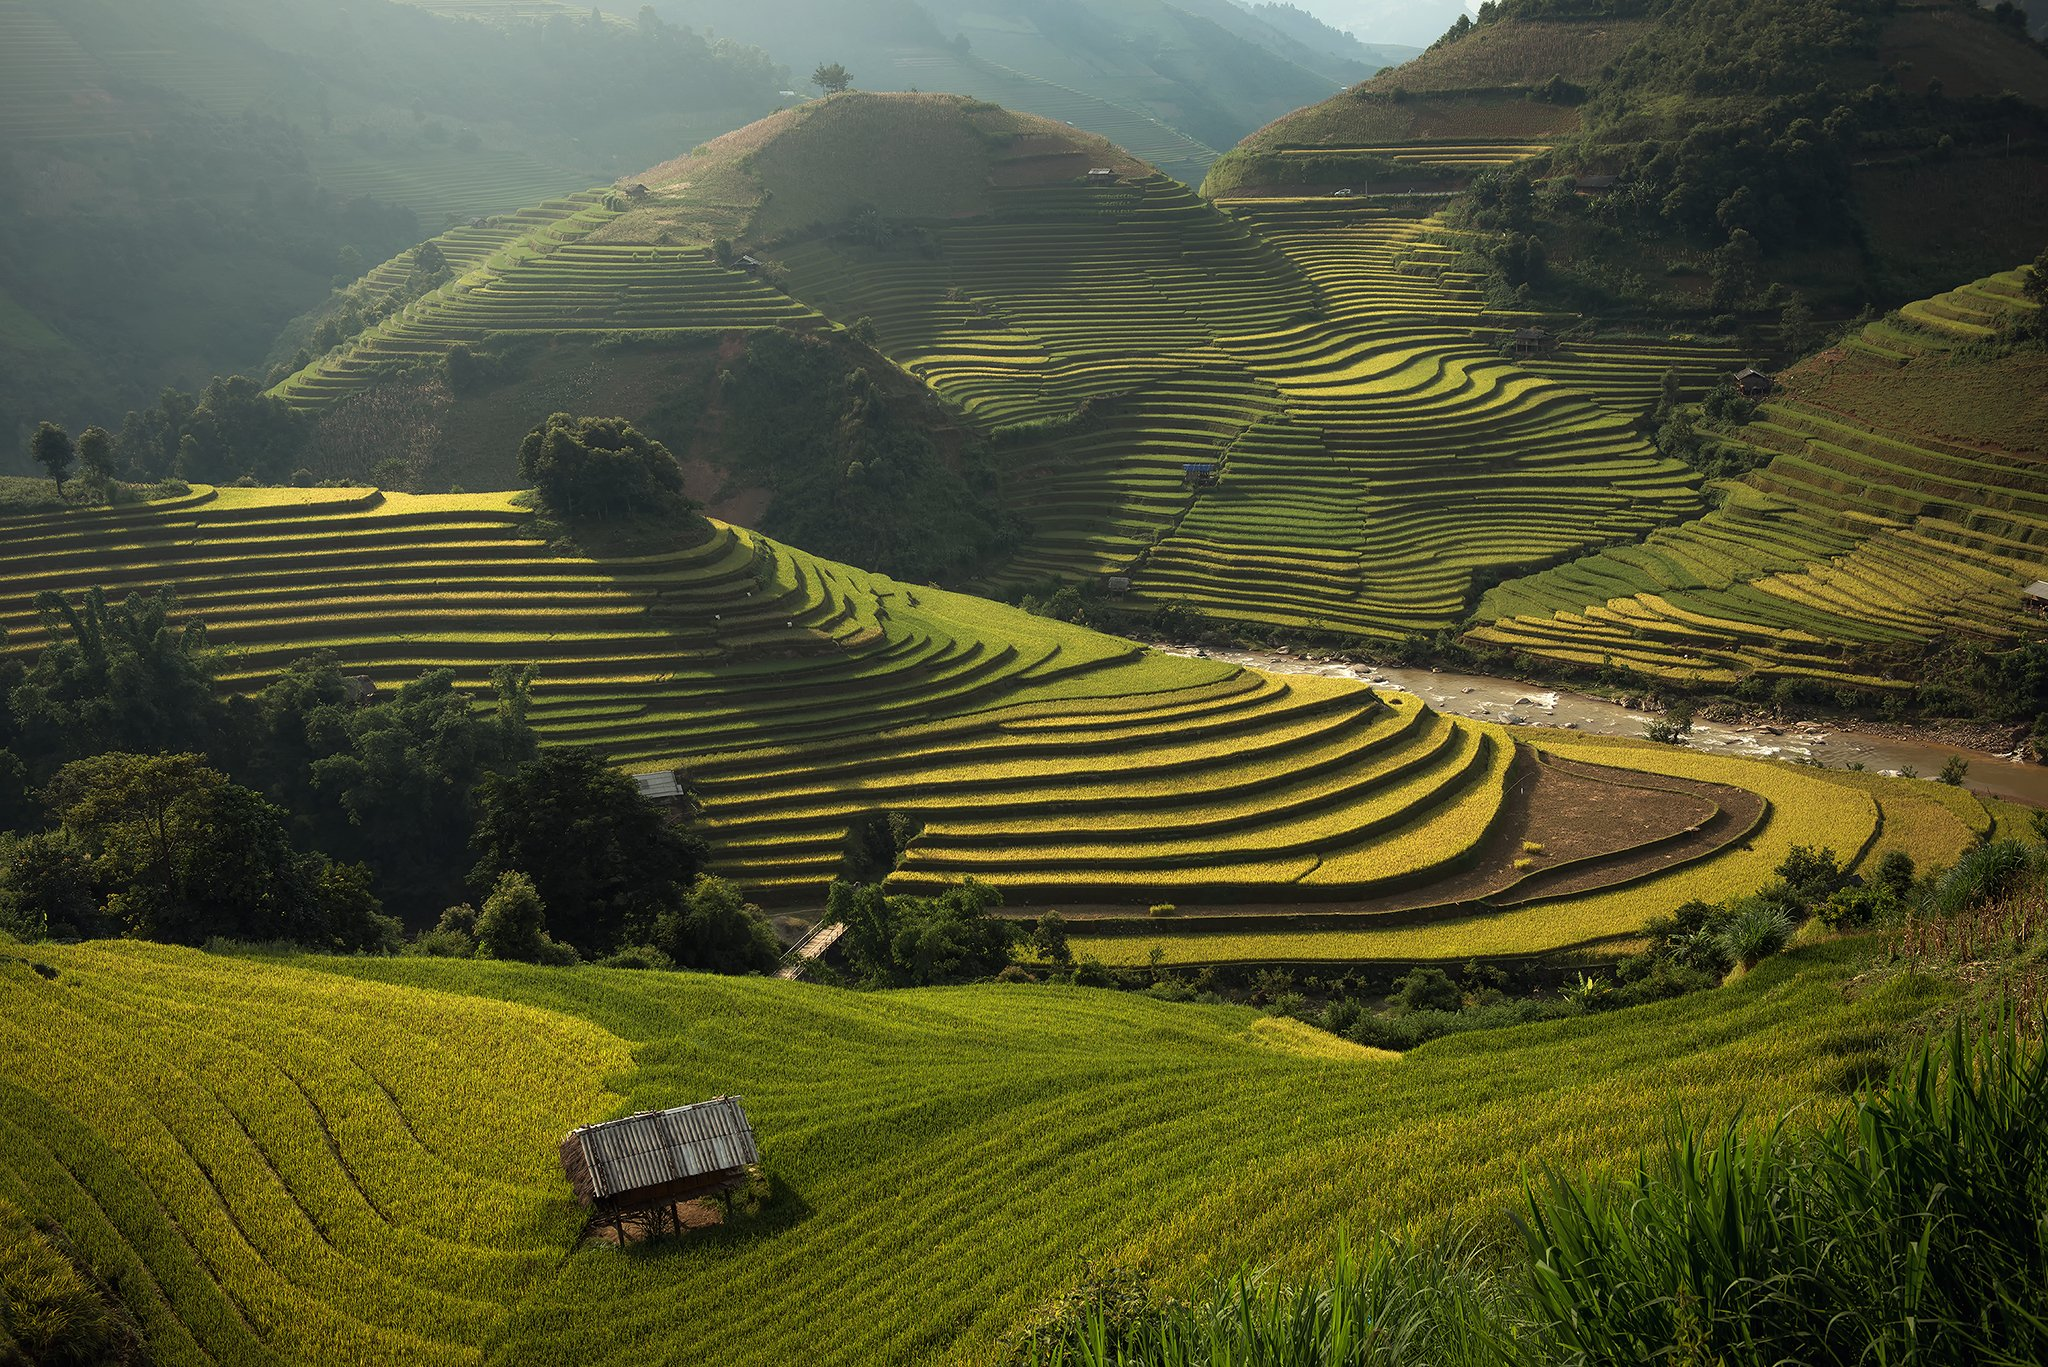 Color Image, Grass, Horizontal, Landscape, Mountain Range, North Vietnam, Outdoors, Photography, Rice - Food Staple, Rice Paddy, Terraced Field, Tranquil Scene, Vietnam, sarawut intarob